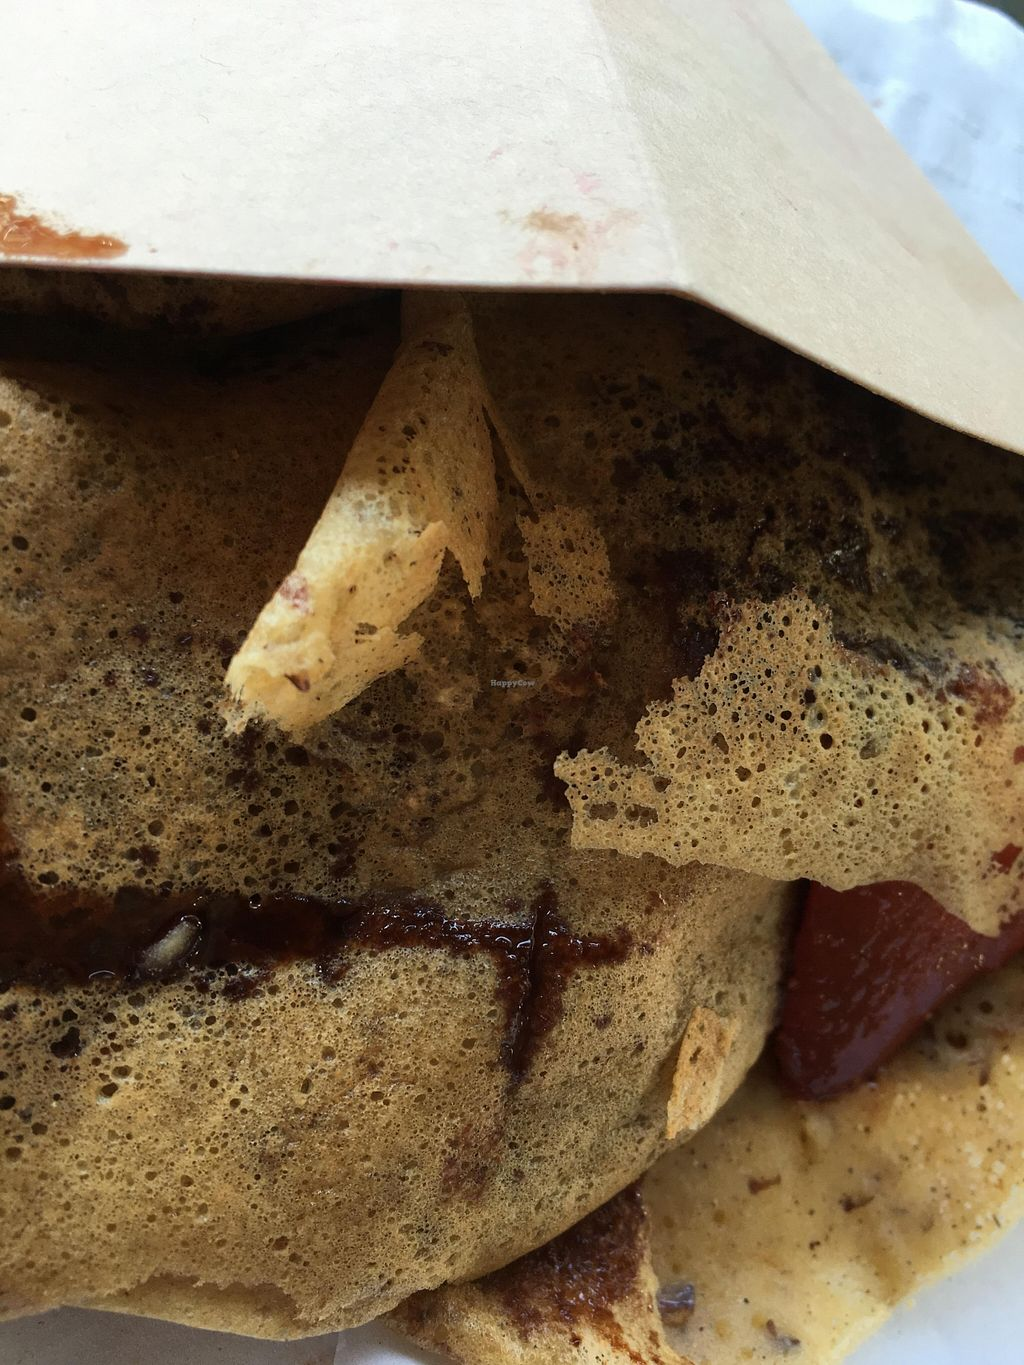 """Photo of The Crepe Cart  by <a href=""""/members/profile/cookiem"""">cookiem</a> <br/>Fruit (strawberries) with organic chocolate syrup- vegan and gluten free <br/> March 31, 2016  - <a href='/contact/abuse/image/71506/142073'>Report</a>"""